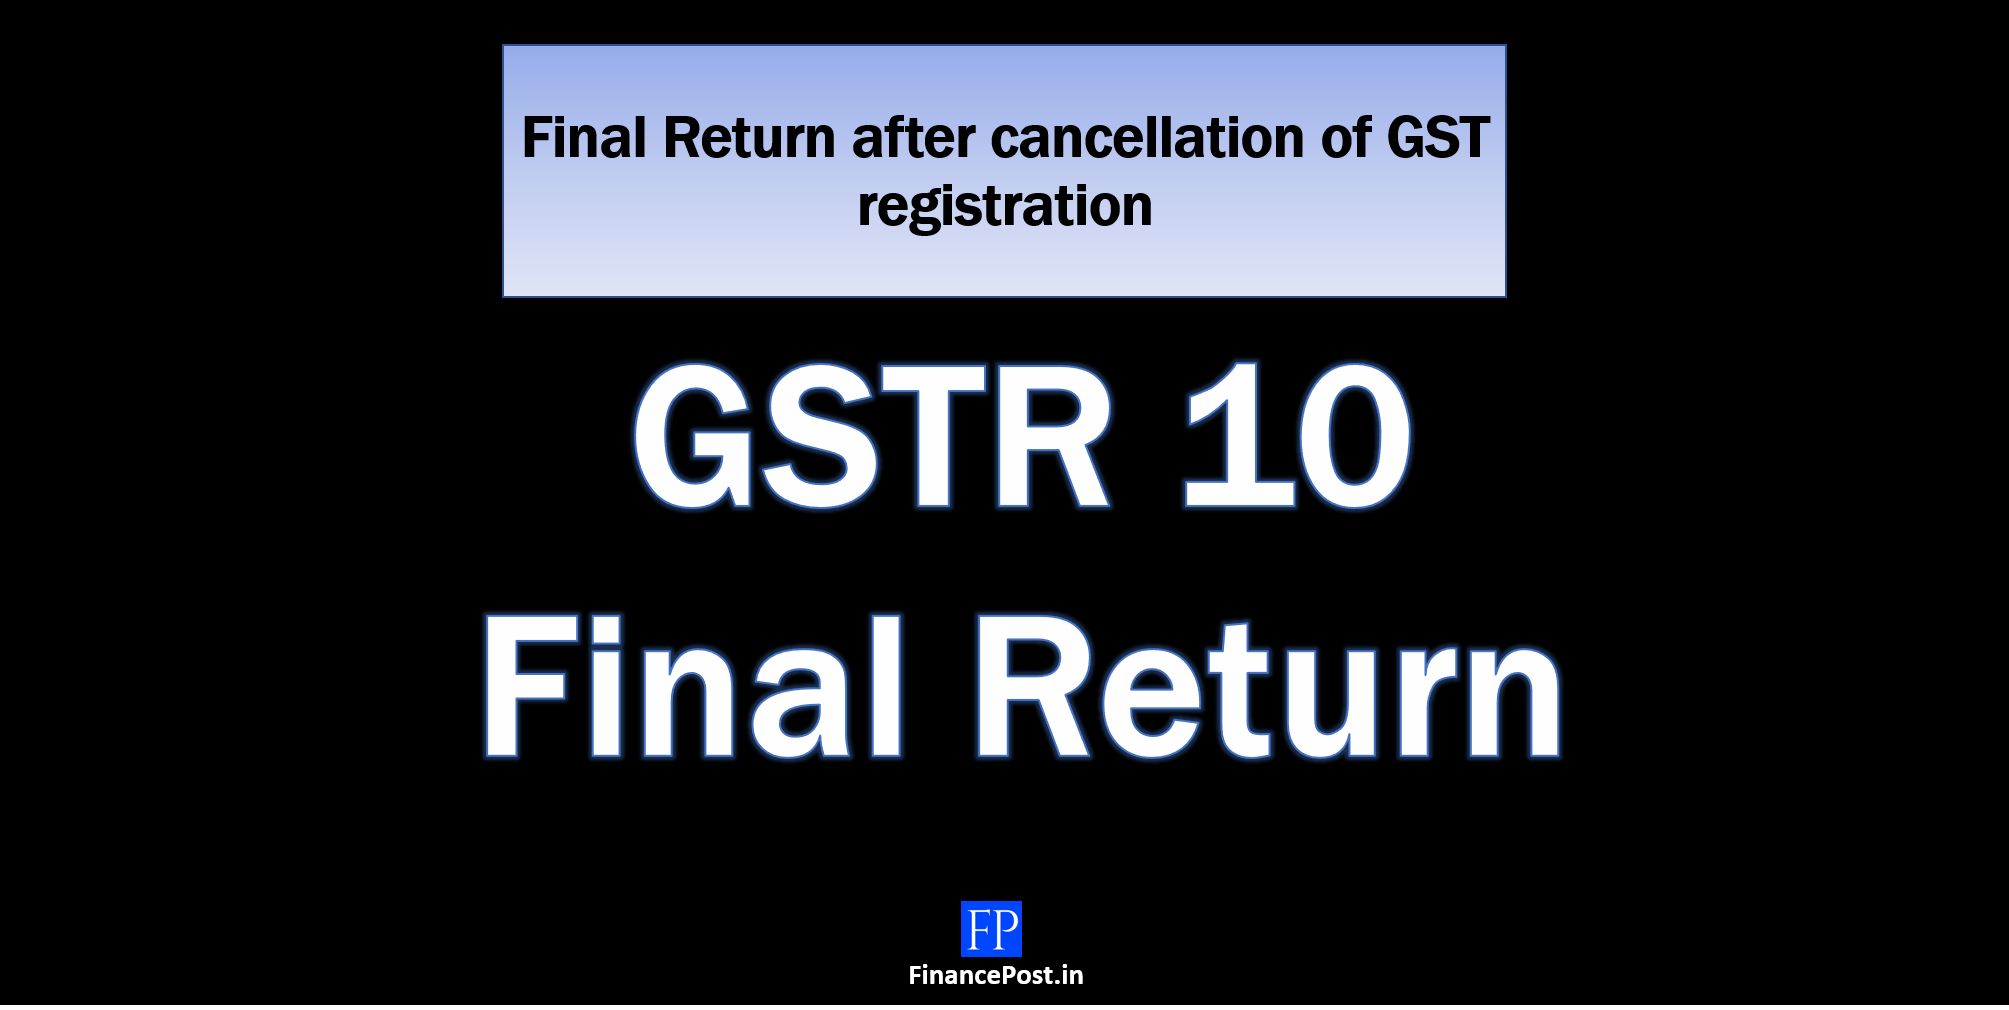 Final Return after cancellation of GST registration